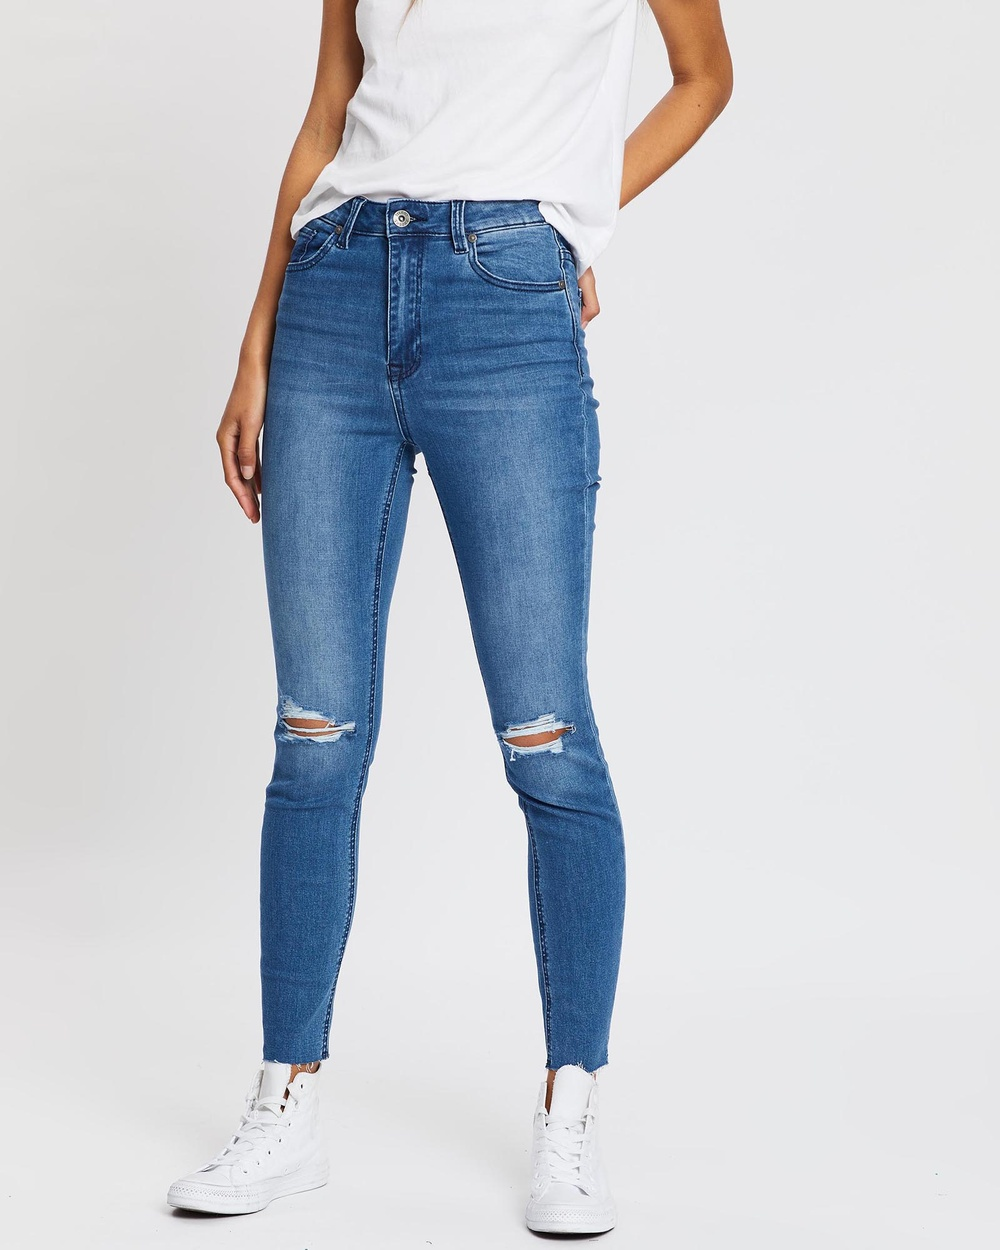 Silent Theory The Vice High Skinny Jeans High-Waisted BLUE Australia